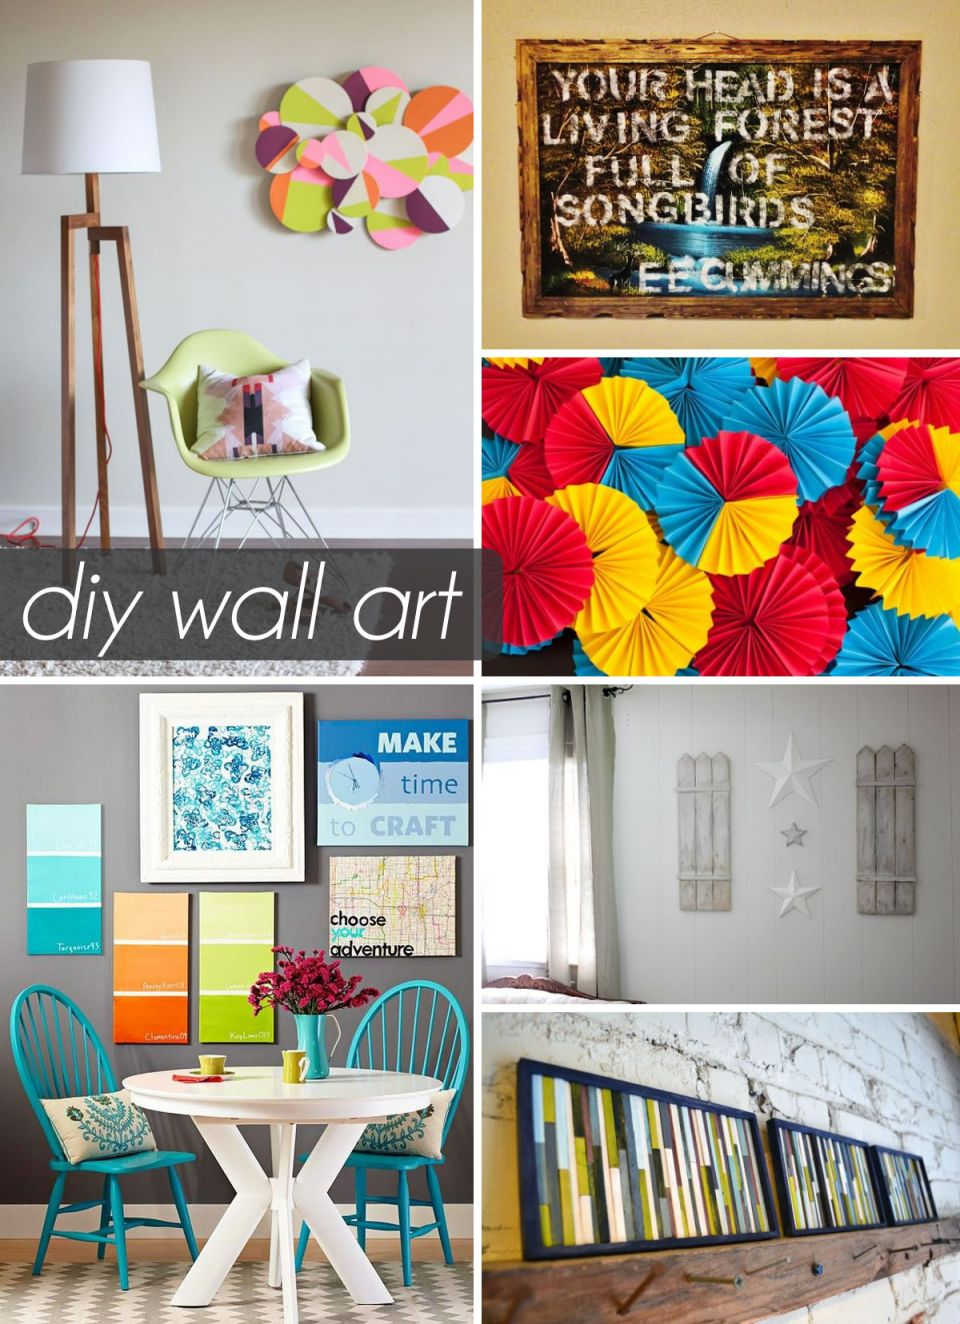 Gorgeous diy art projects to do at home